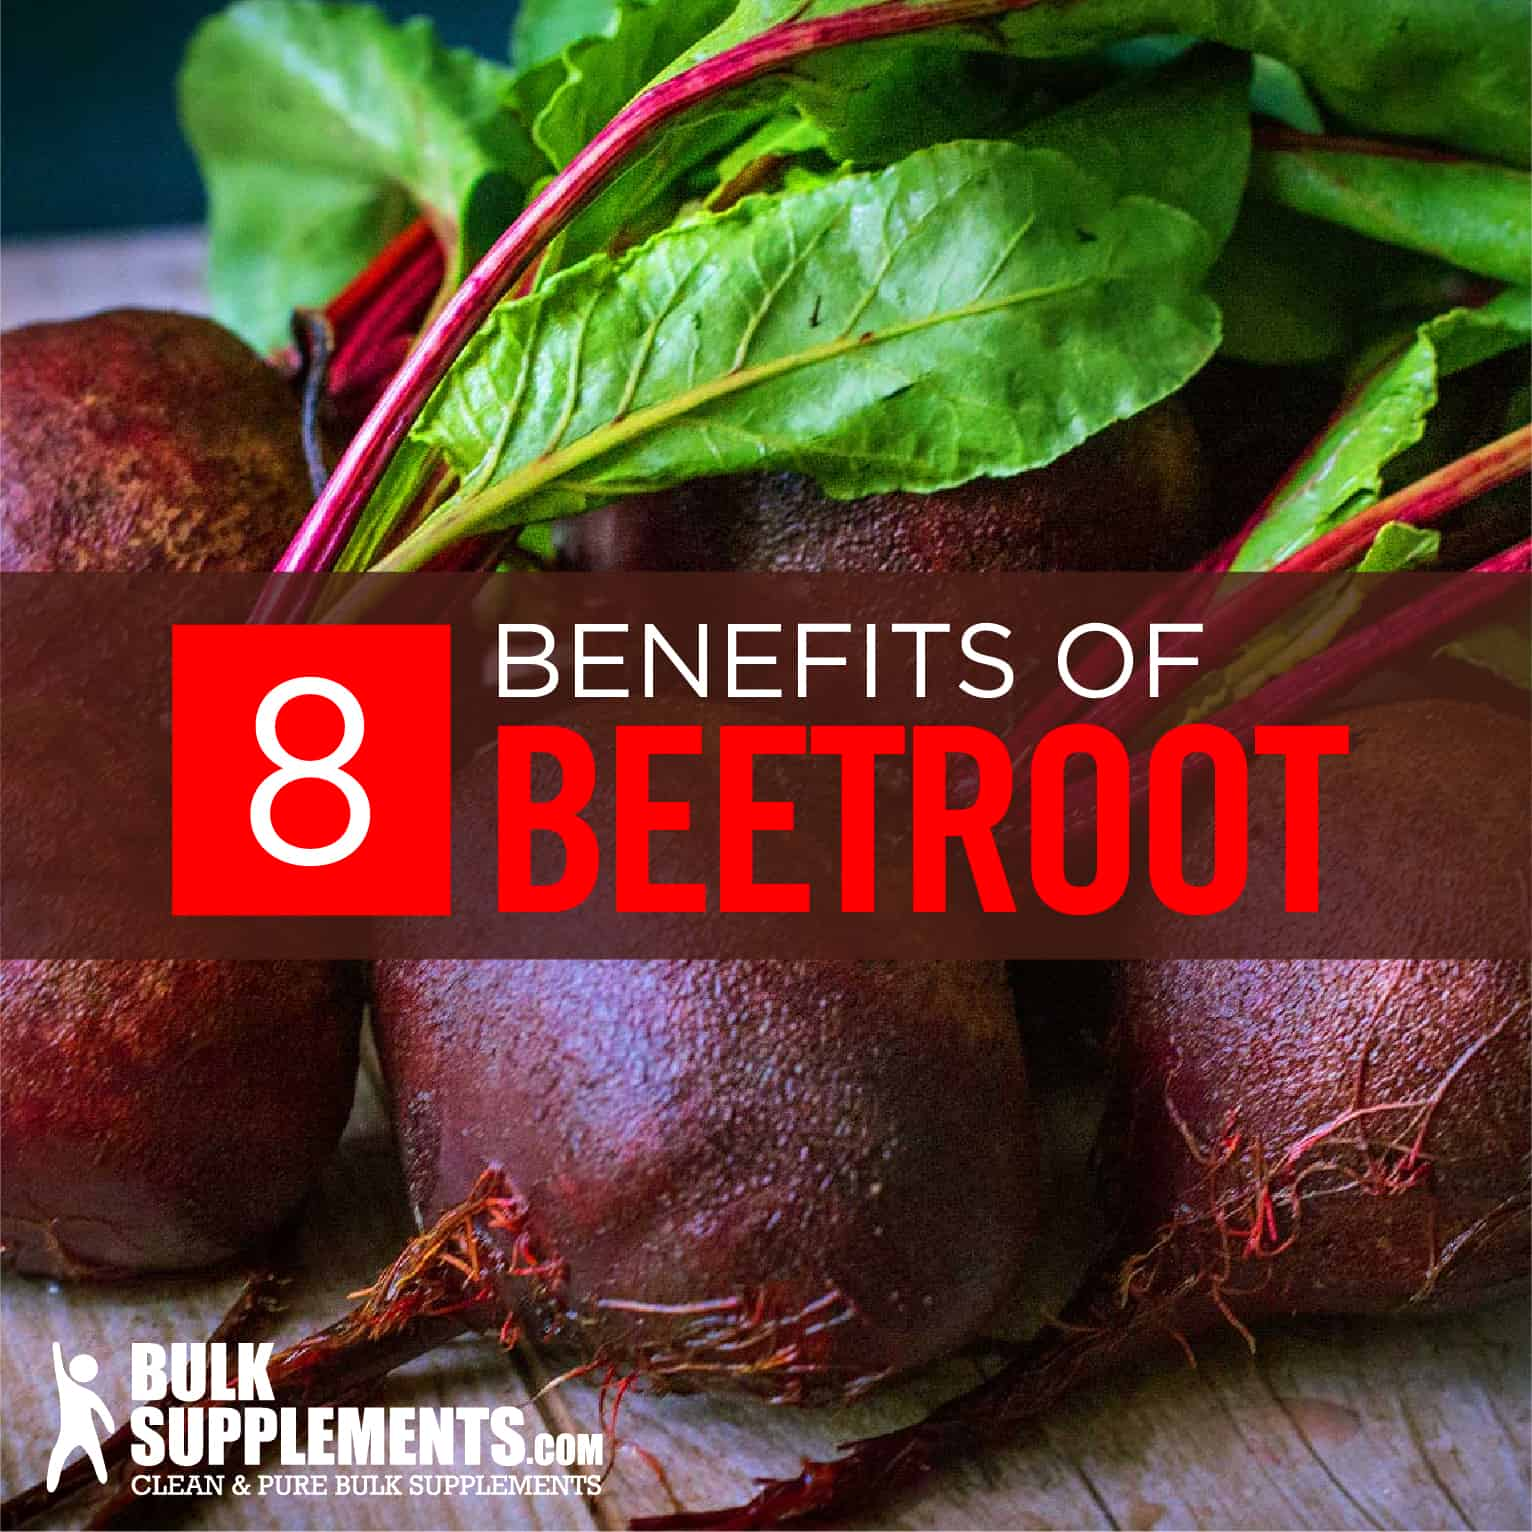 What Is Beetroot Powder And Why It Good For You